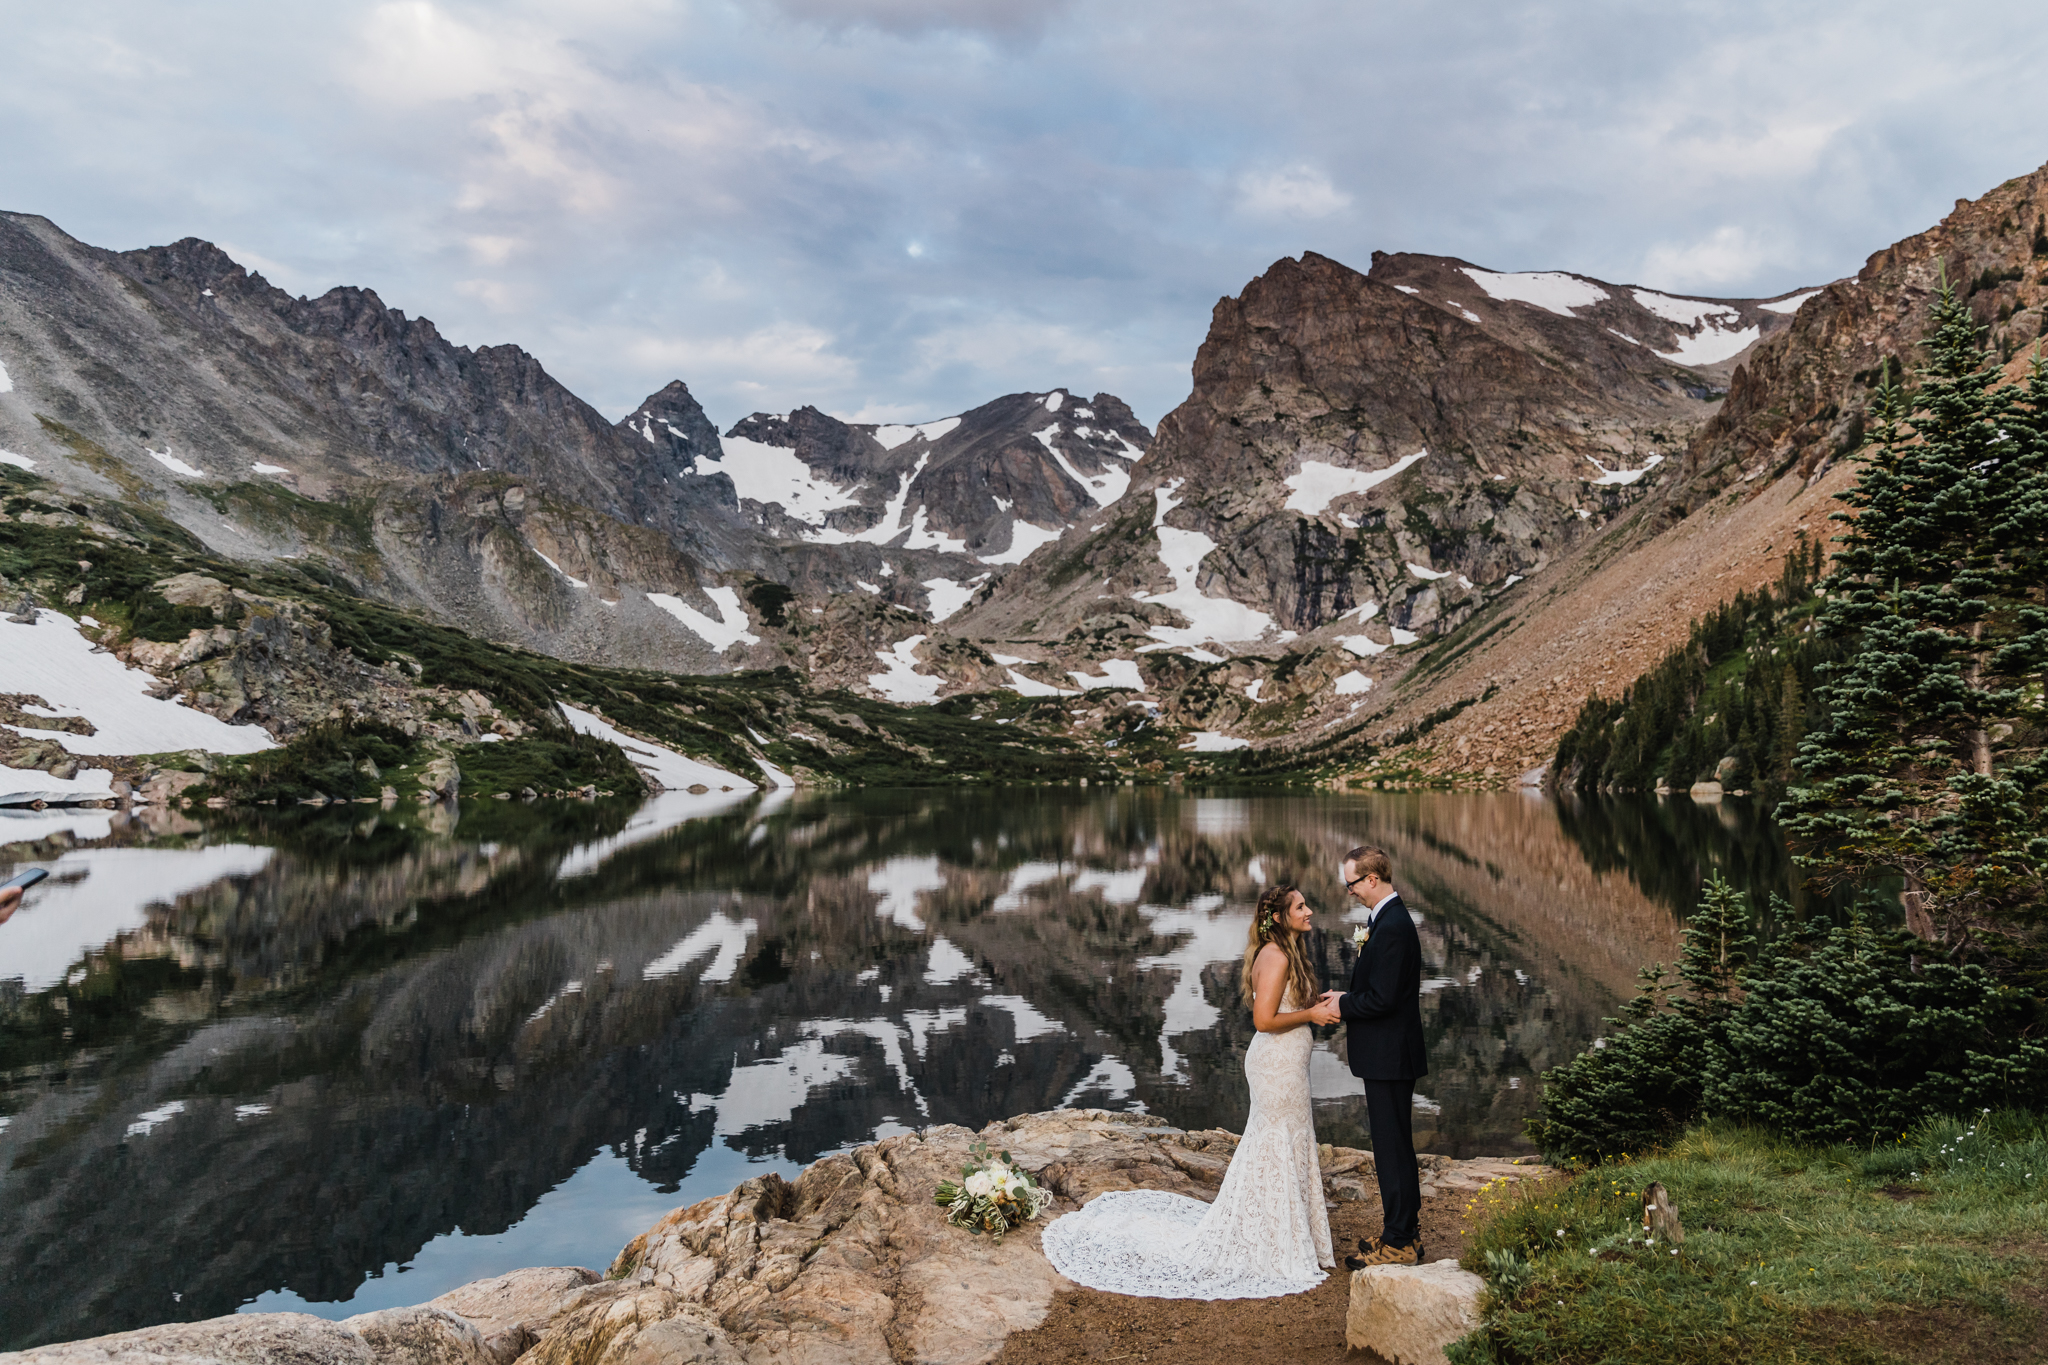 Colorado Elopement Photographer | Alpine Lake Hiking Elopement